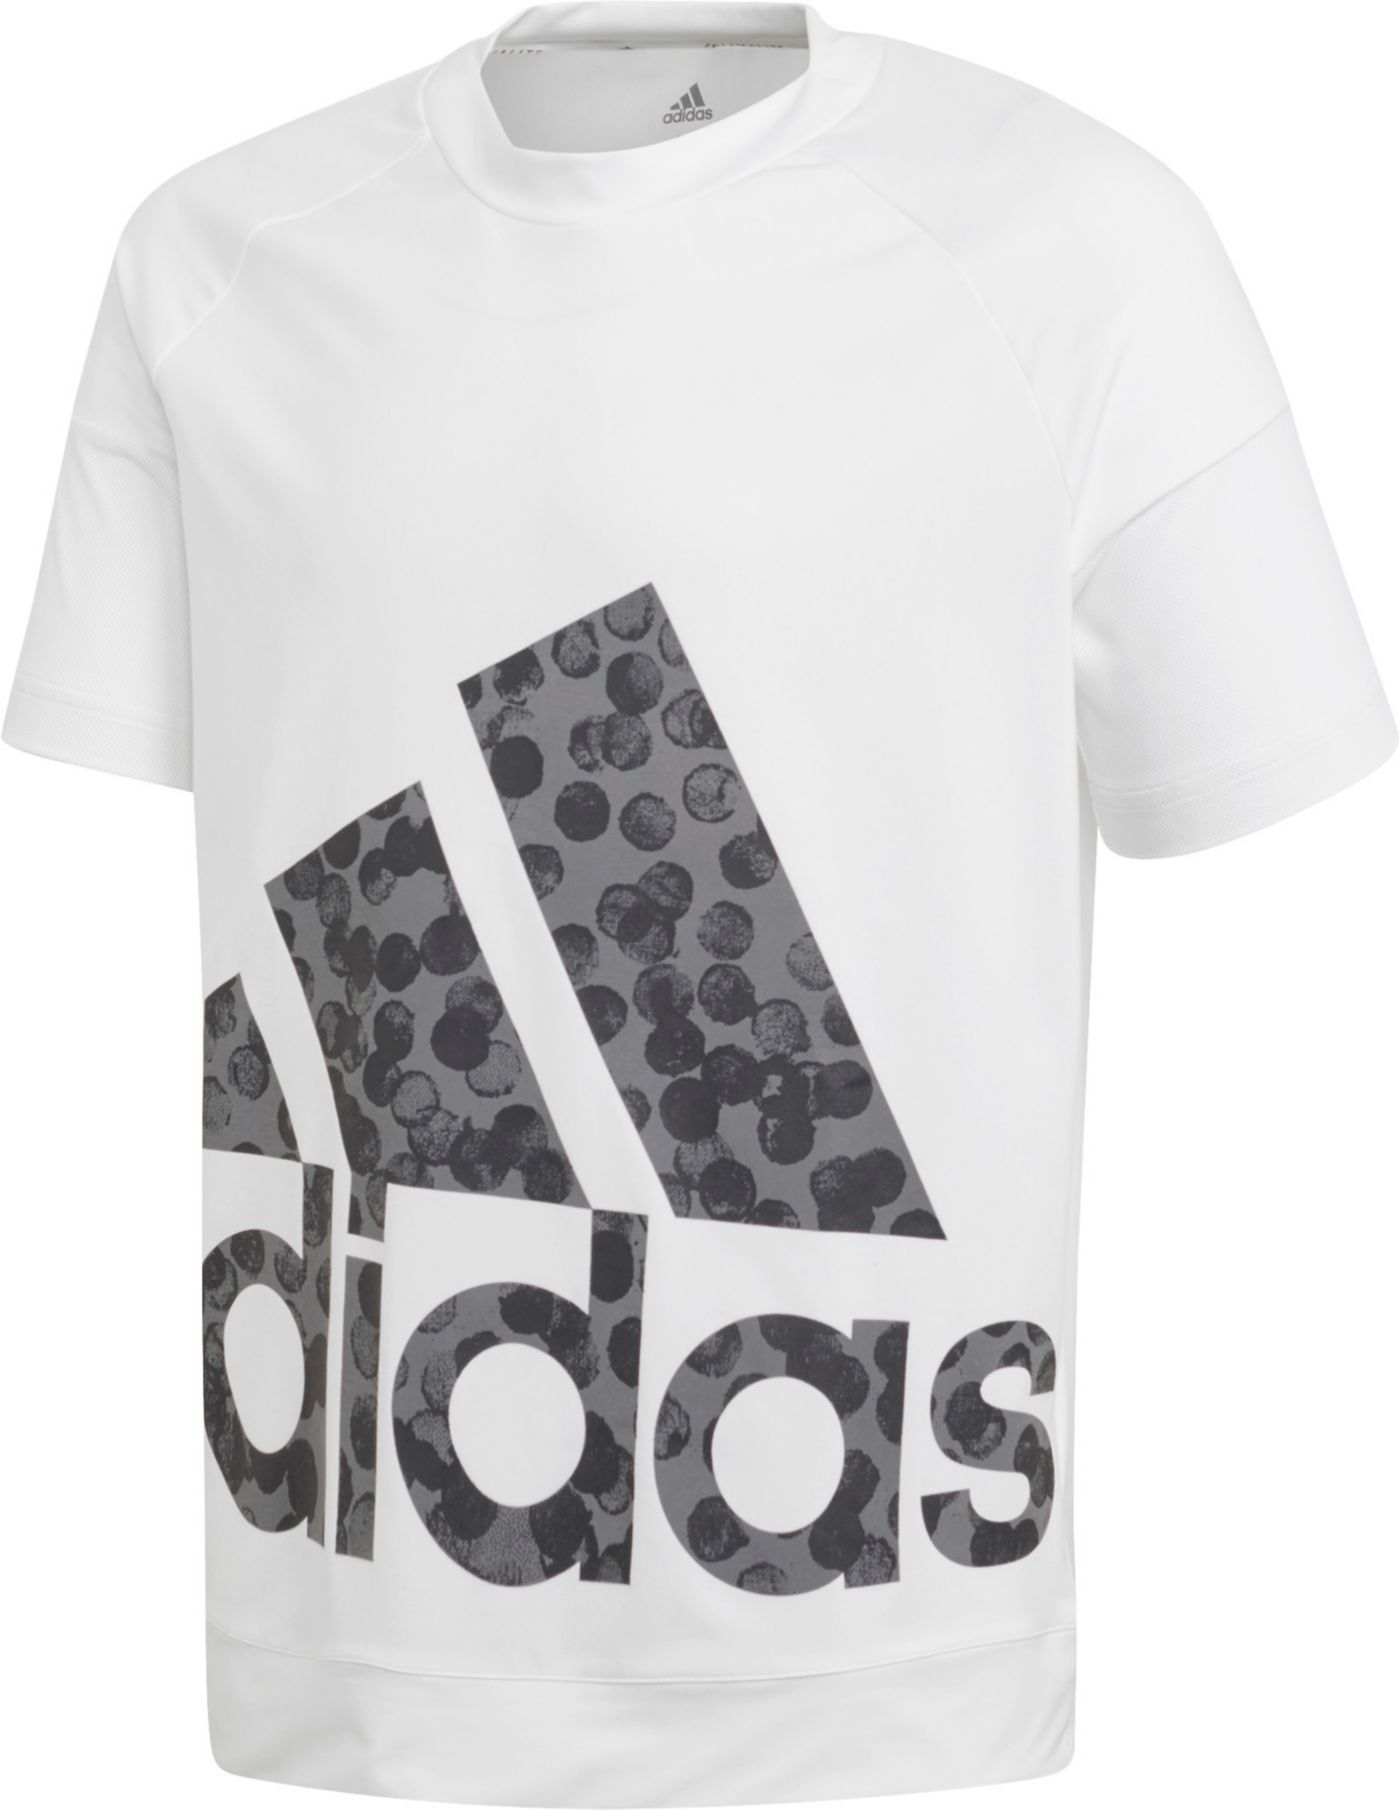 adidas Girls' Statement T-Shirt